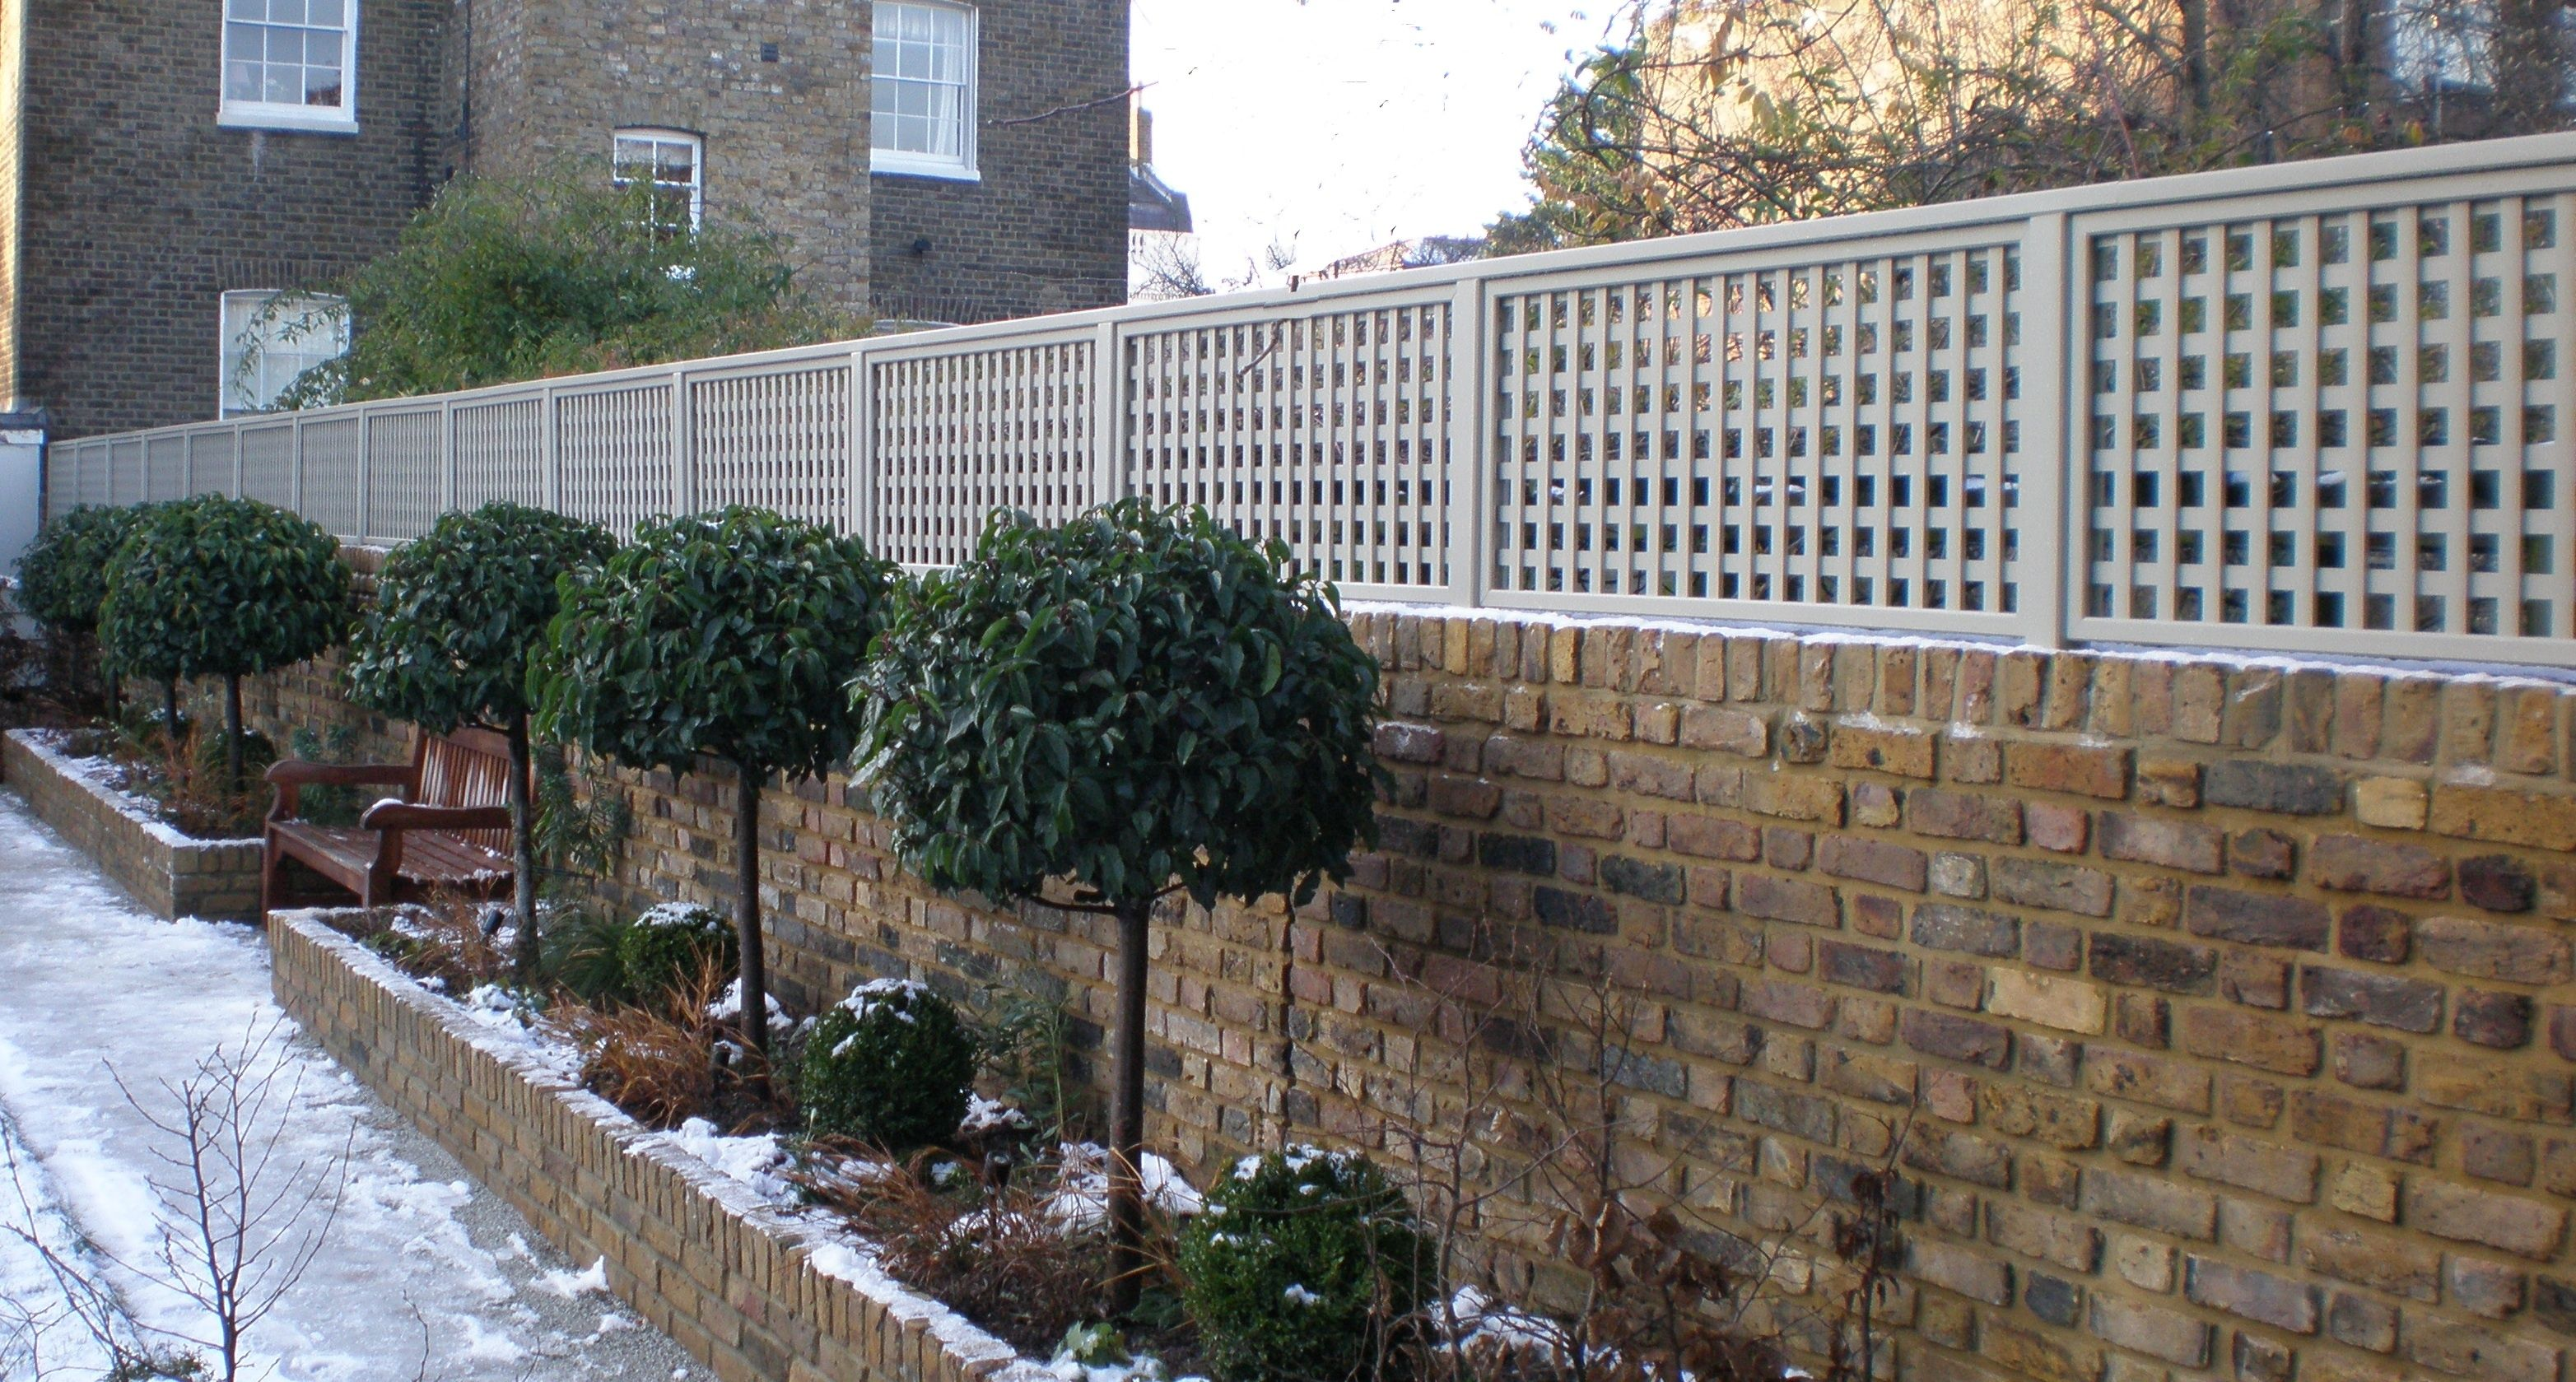 Garden bed with trees  trellis painted light grey on top of brick wall raised bed with